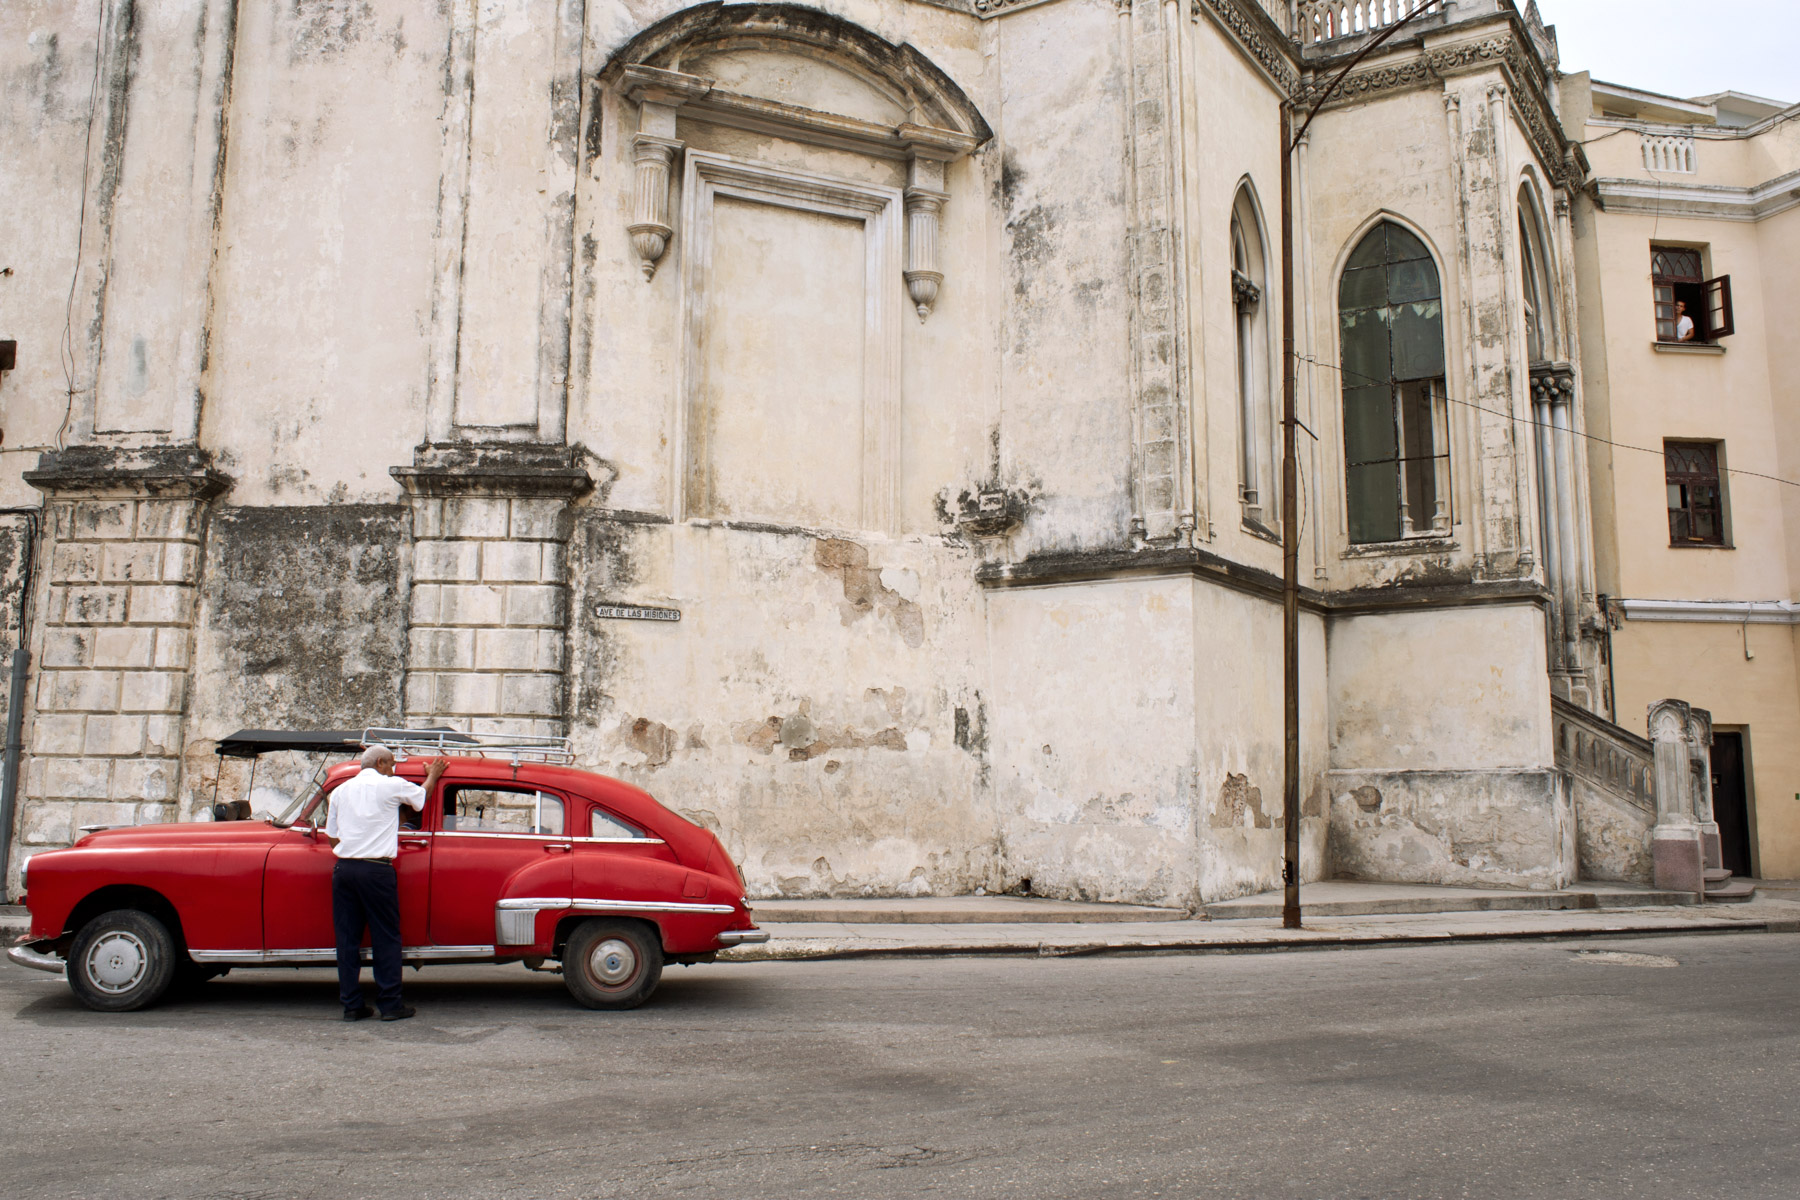 wojtek-jakubiec-photographer-montreal-cuba-havana-street-documentary-man-with-red-car-.jpg